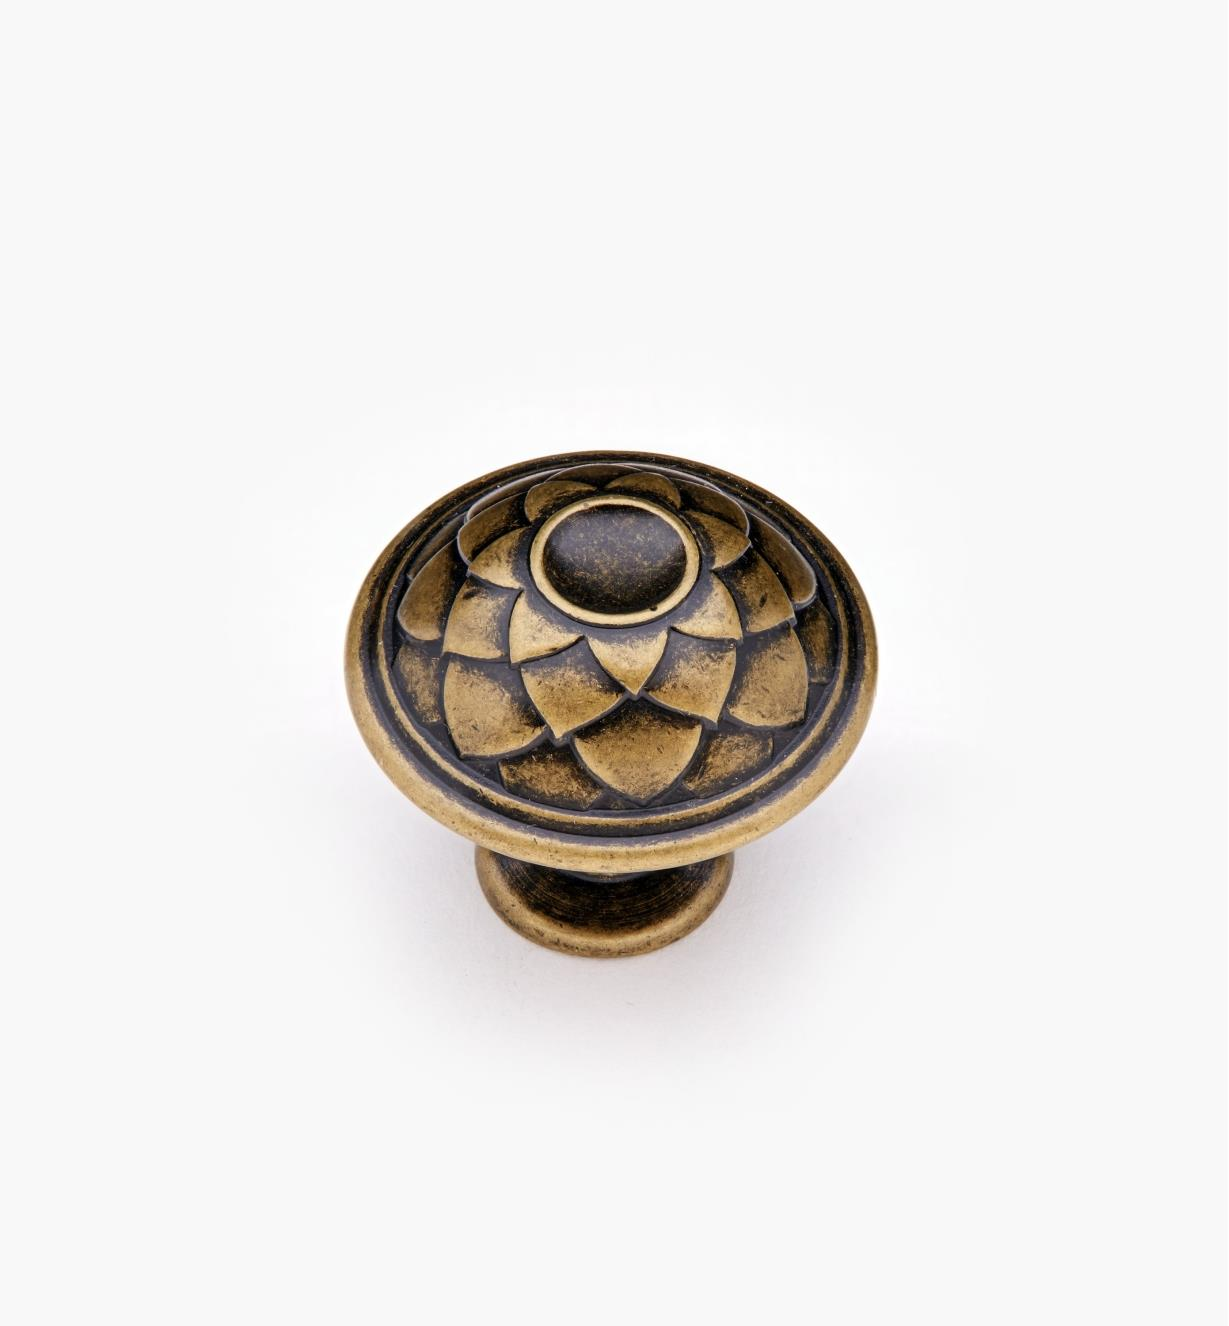 02A1240 - Antique Brass Knob